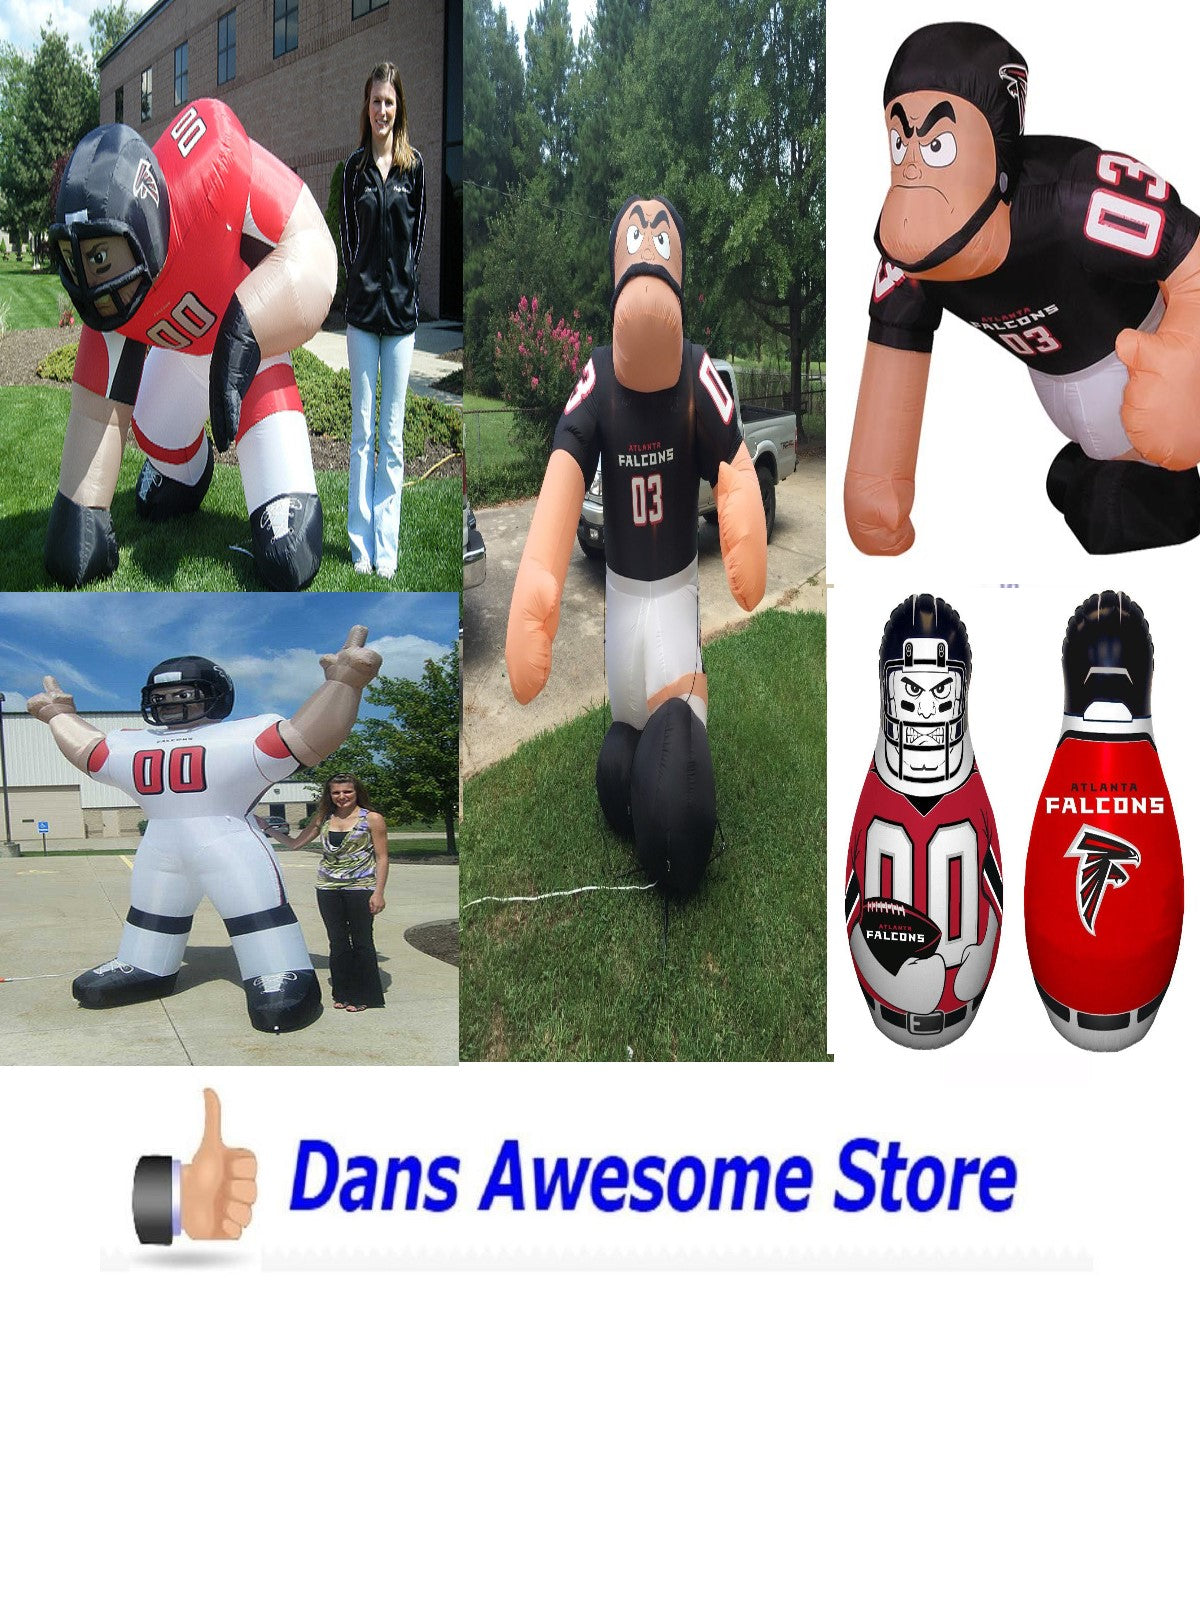 Atlanta Falcons Inflatable - Dans Awesome Store